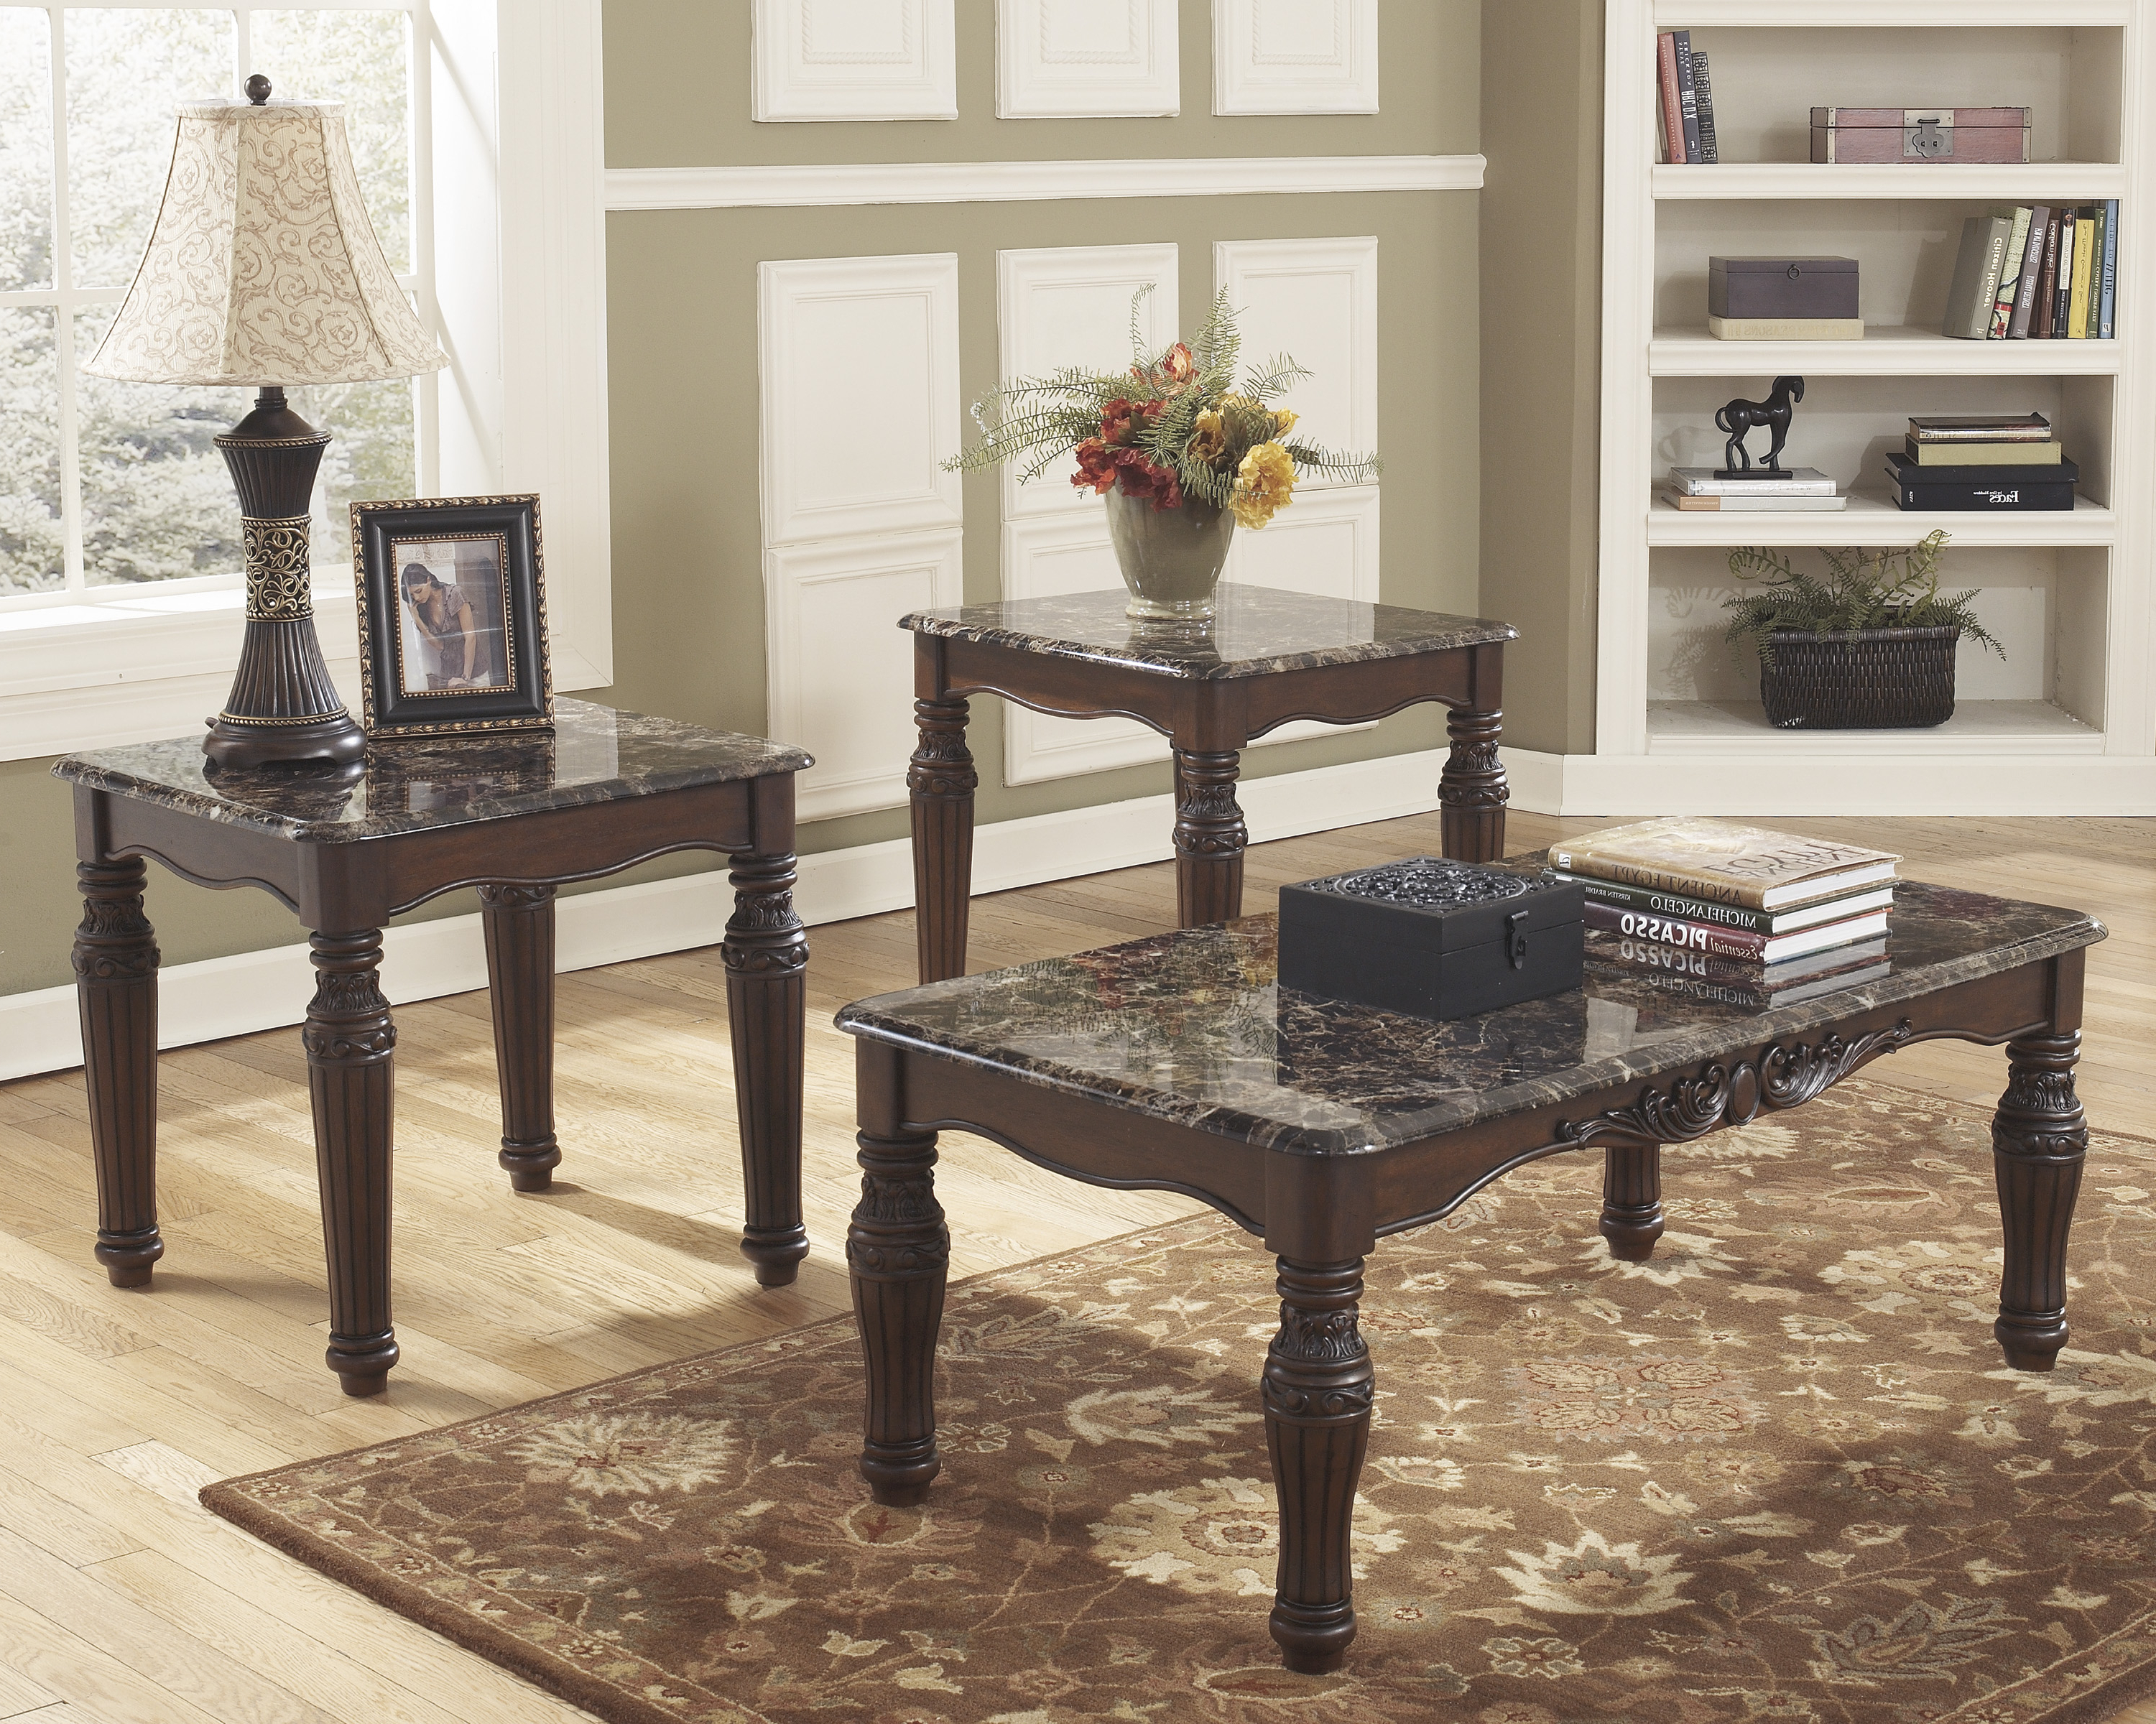 Sofa Table Chairs Regarding Most Recent North Shore Table Set – Brown's Furniture Showplace (View 18 of 20)